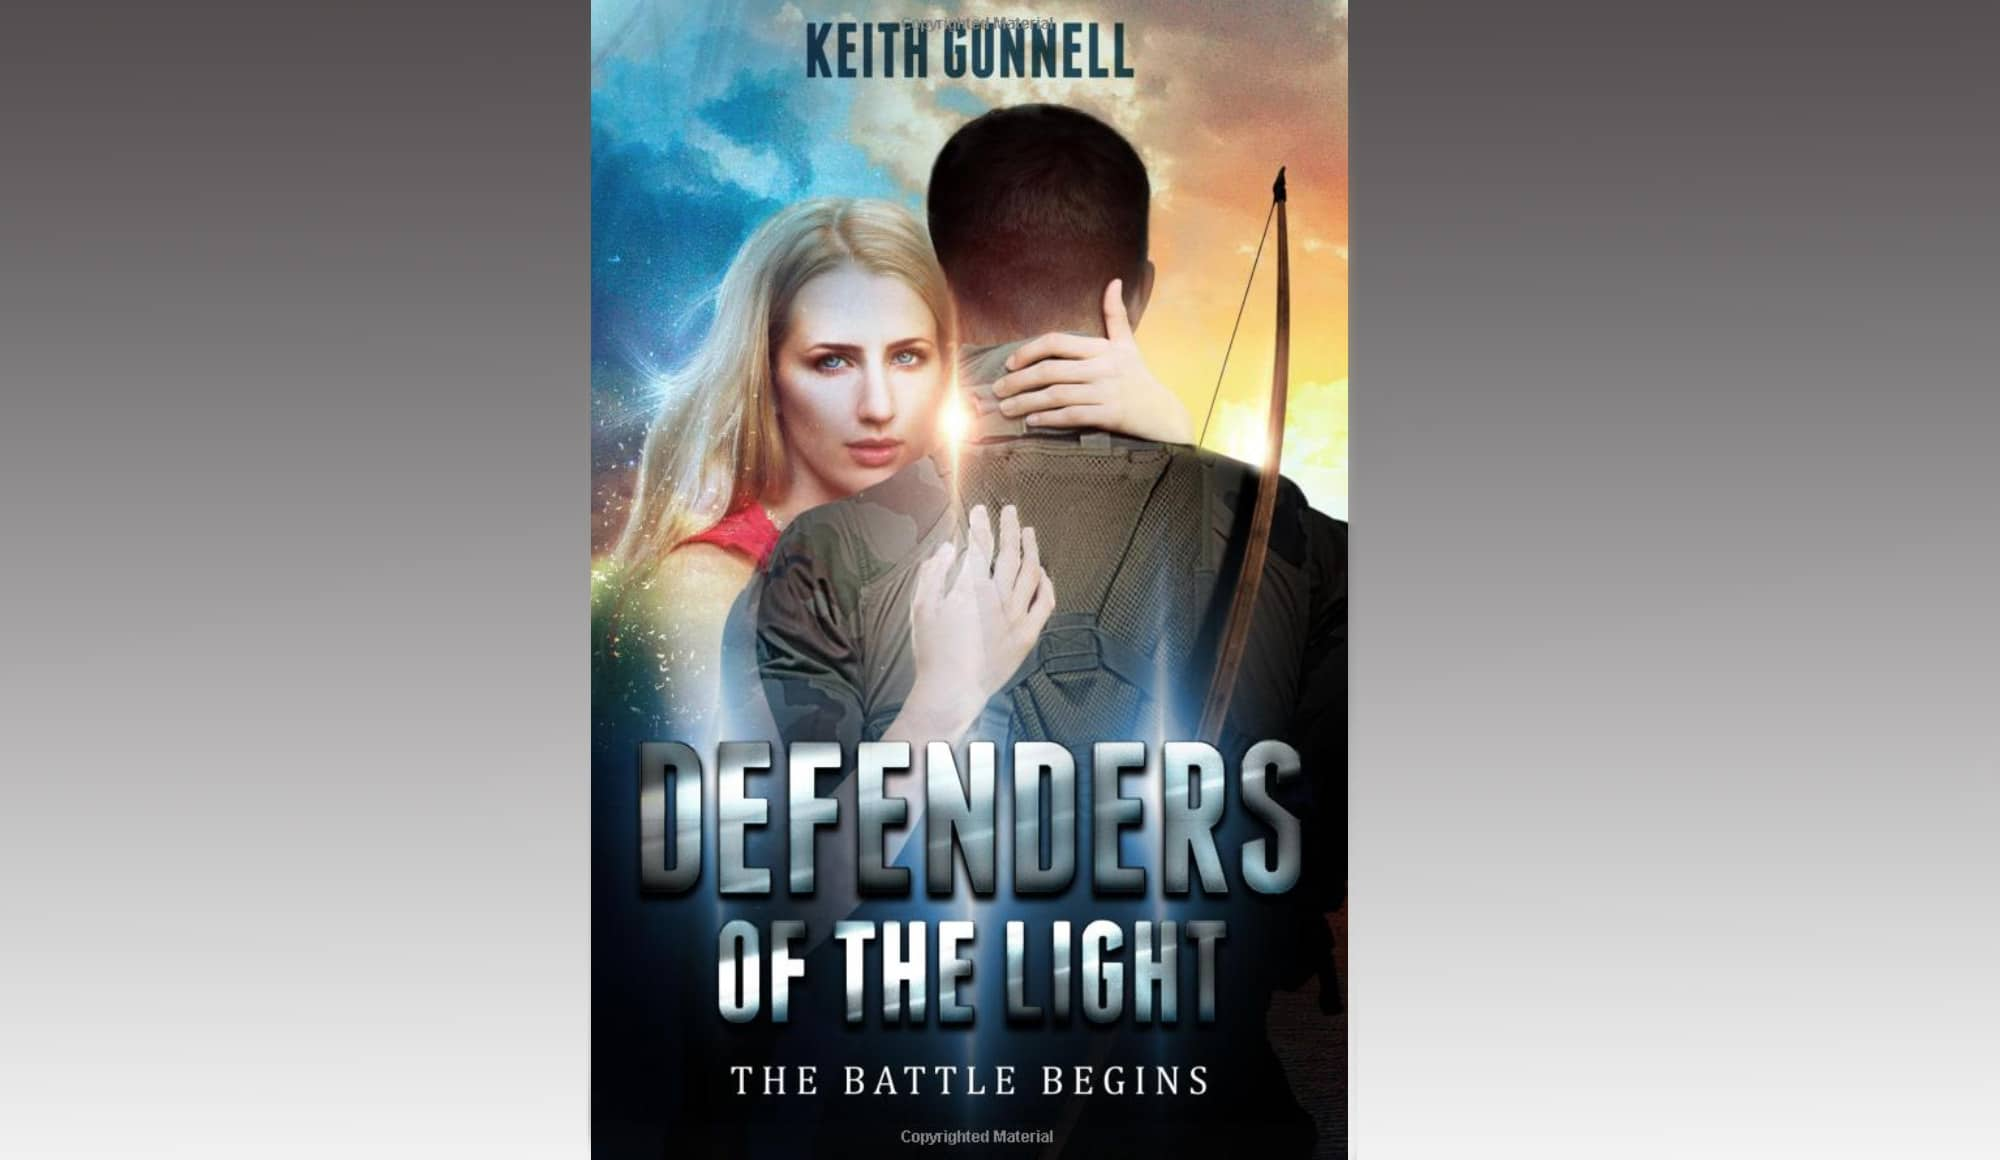 Defenders of the Light: The Battle Begins